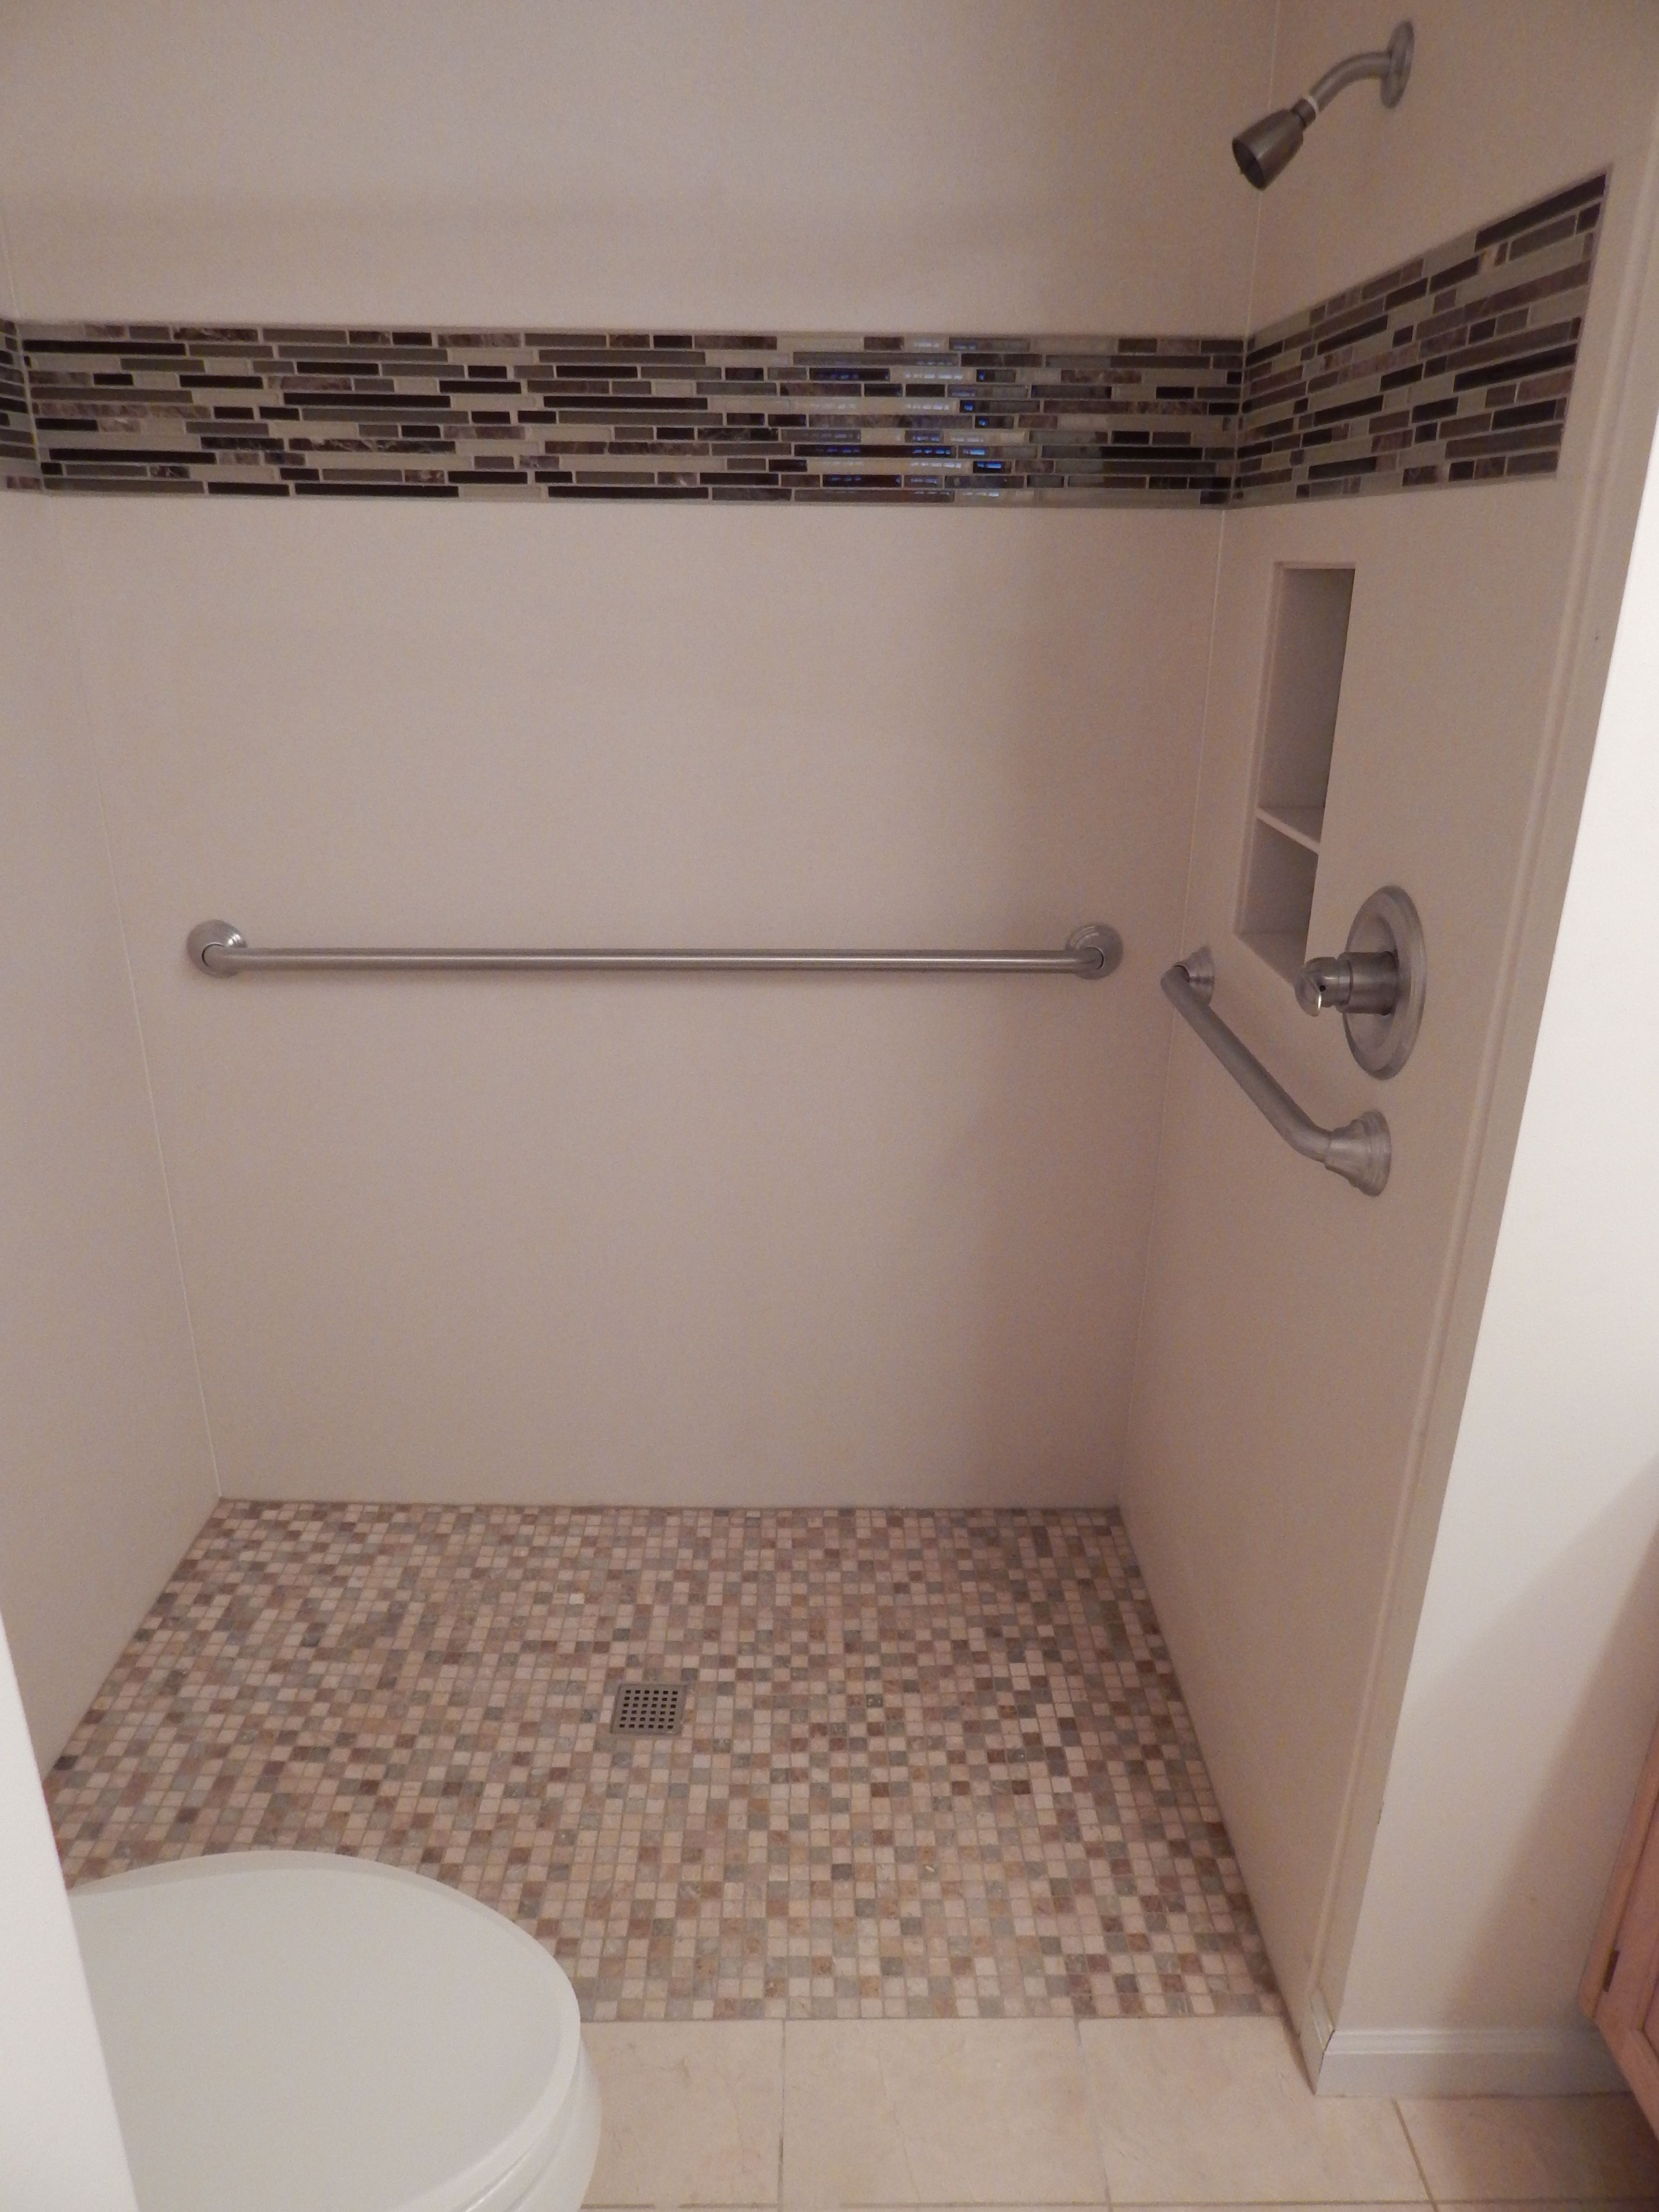 This zero barrier custom shower features a corian wall surround this zero barrier custom shower features a corian wall surround with a tile inset we installed a recessed wall box and x slip resistant floor tile for a dailygadgetfo Images